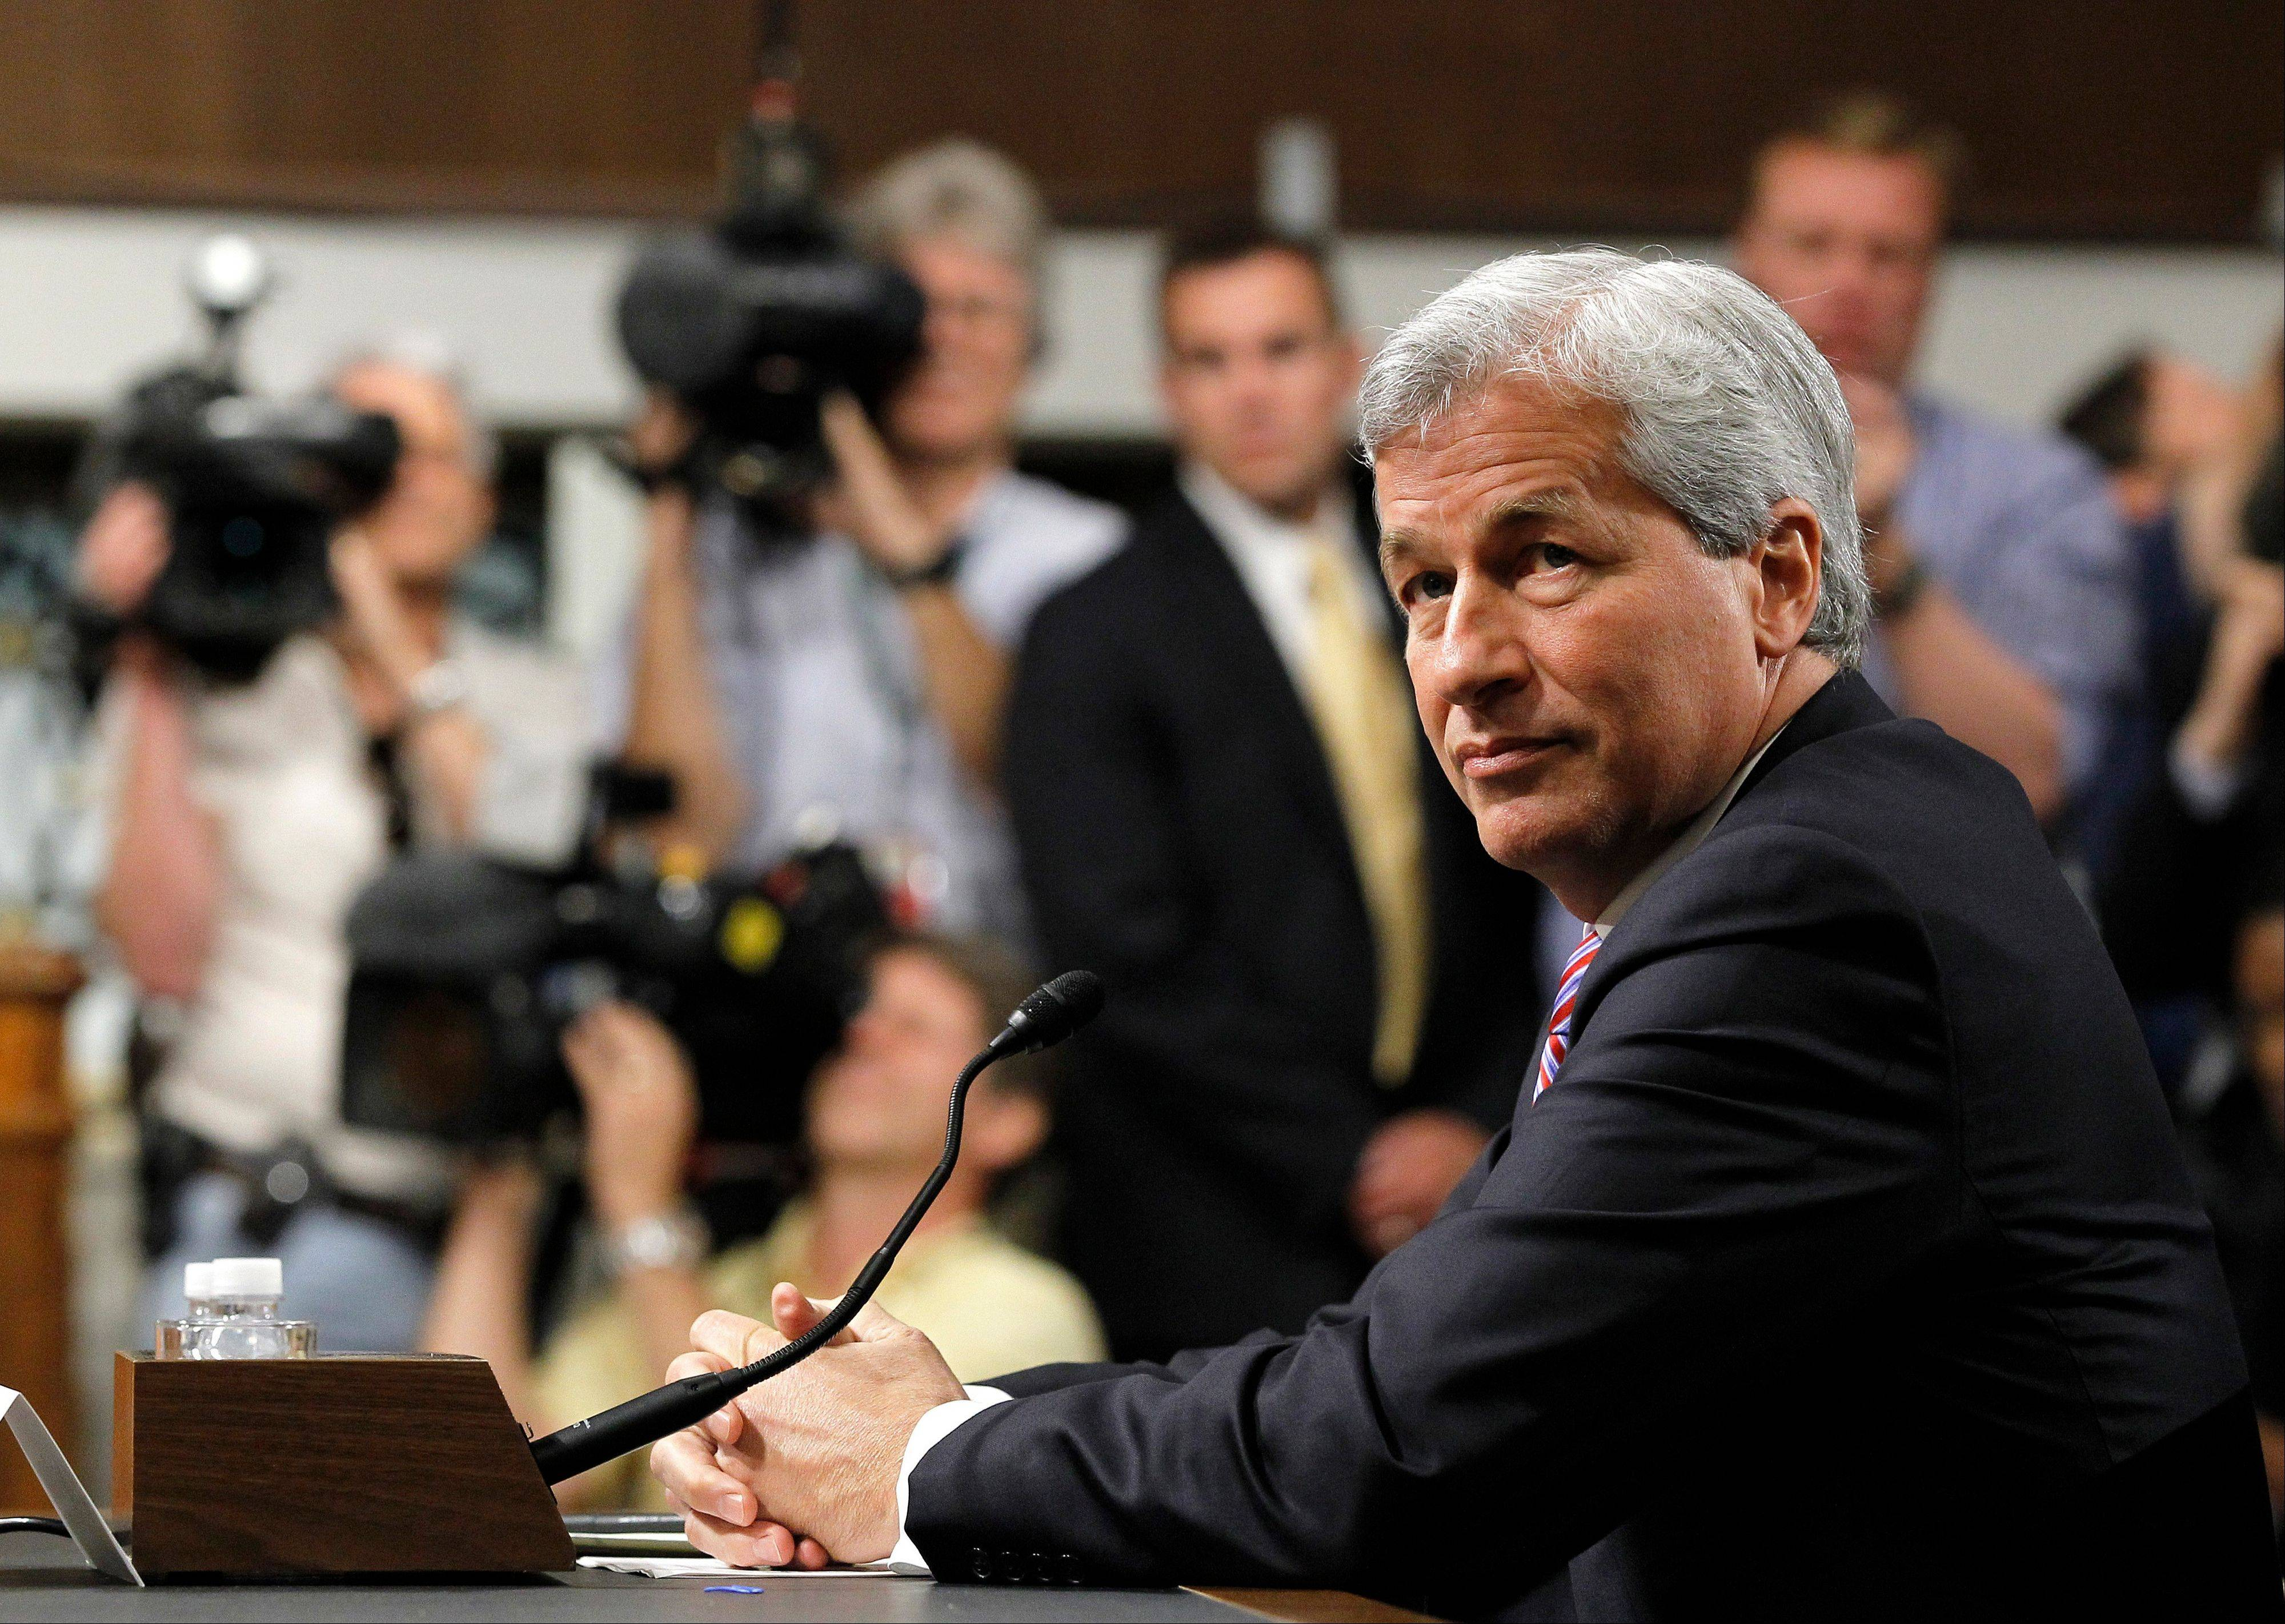 JPMorgan Chase CEO Jamie Dimon, head of the largest bank in the US, prepares to testify on Capitol Hill in Washington, Wednesday, June 13, 2012, before the Senate Banking Committee about how his company recently lost more than $2 billion on risky trades and whether its executives failed to properly manage those risks.